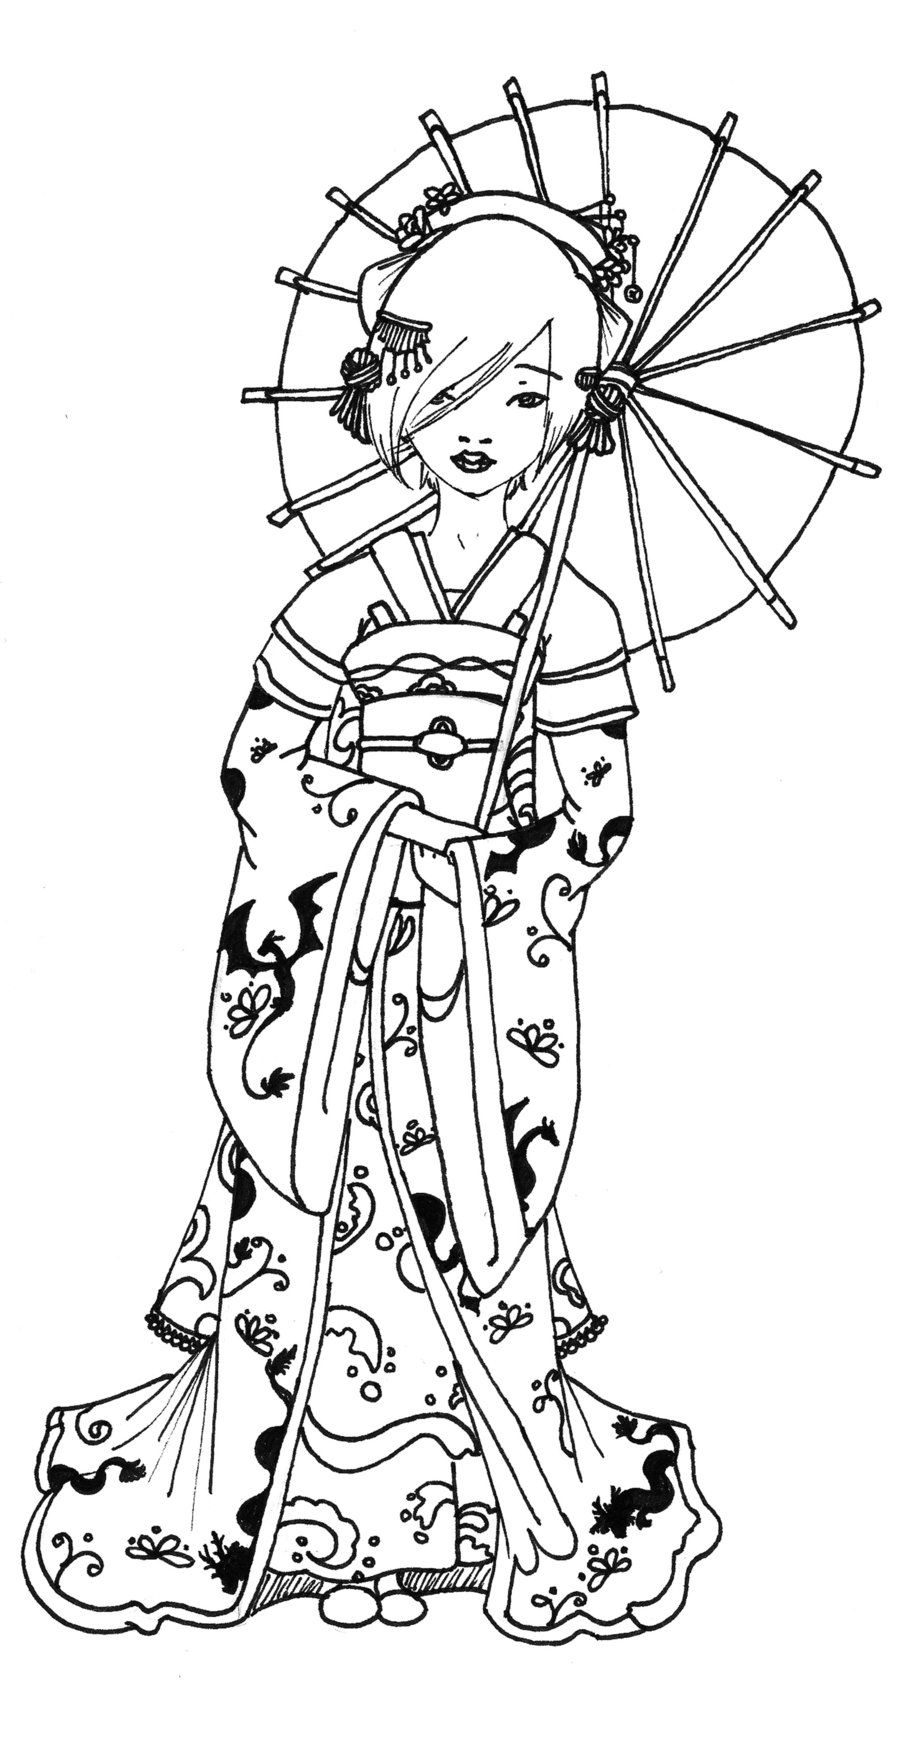 Uncategorized Geisha Coloring Pages geisha coloring pages googleda ara zentangle colouring ara